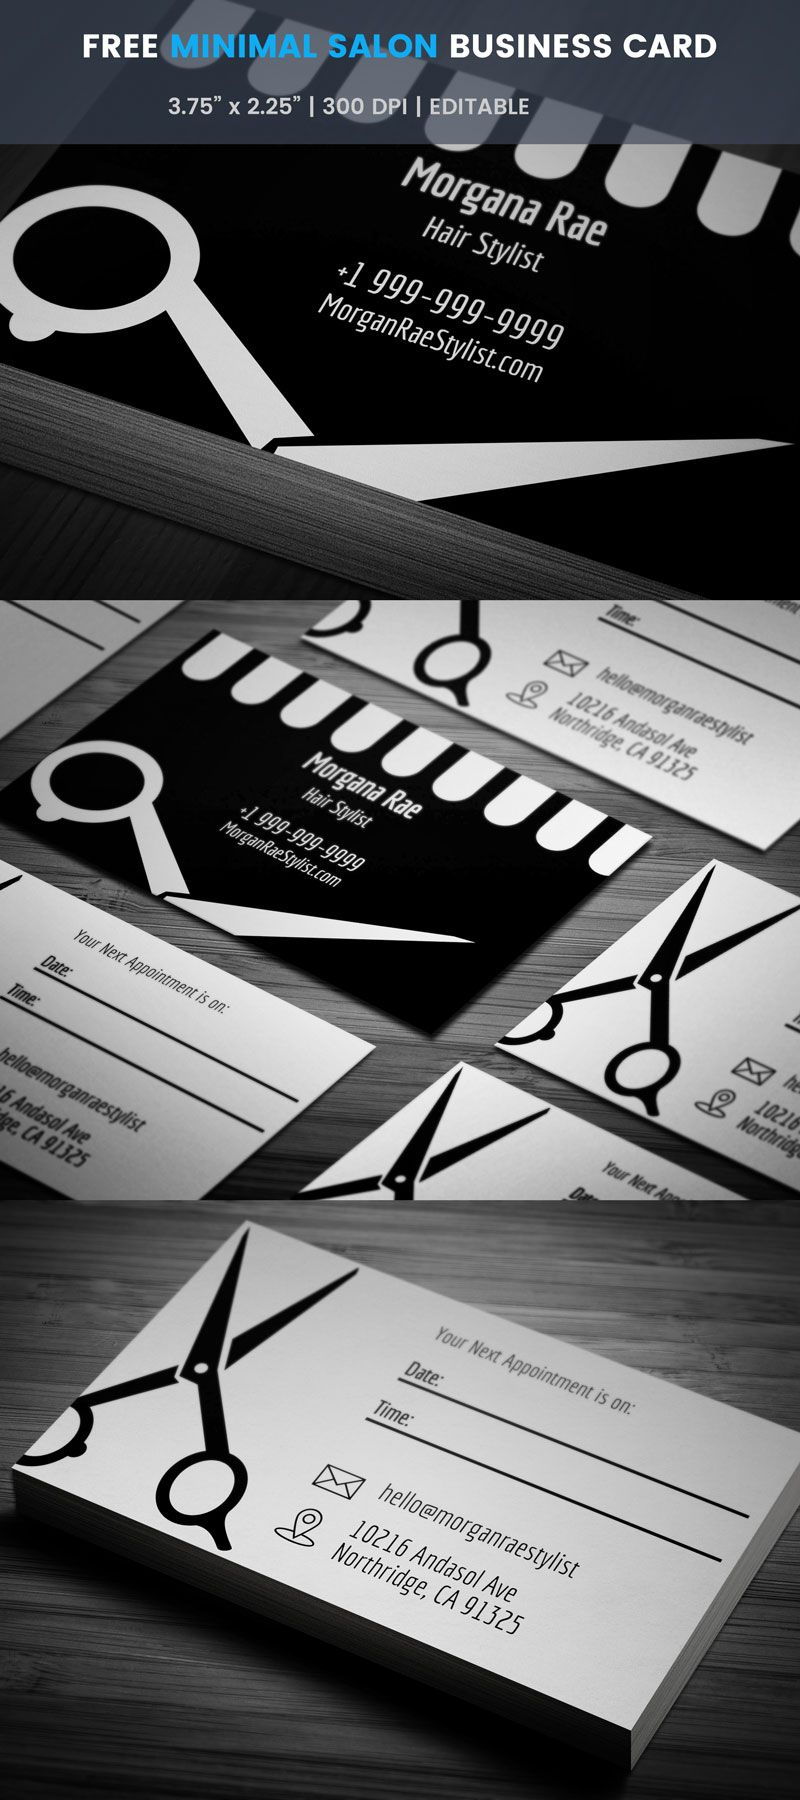 Salon Business Card With Appointment Full Preview Hairstylist Business Cards Templates Hairstylist Business Cards Stylist Business Cards Hair stylist business card template